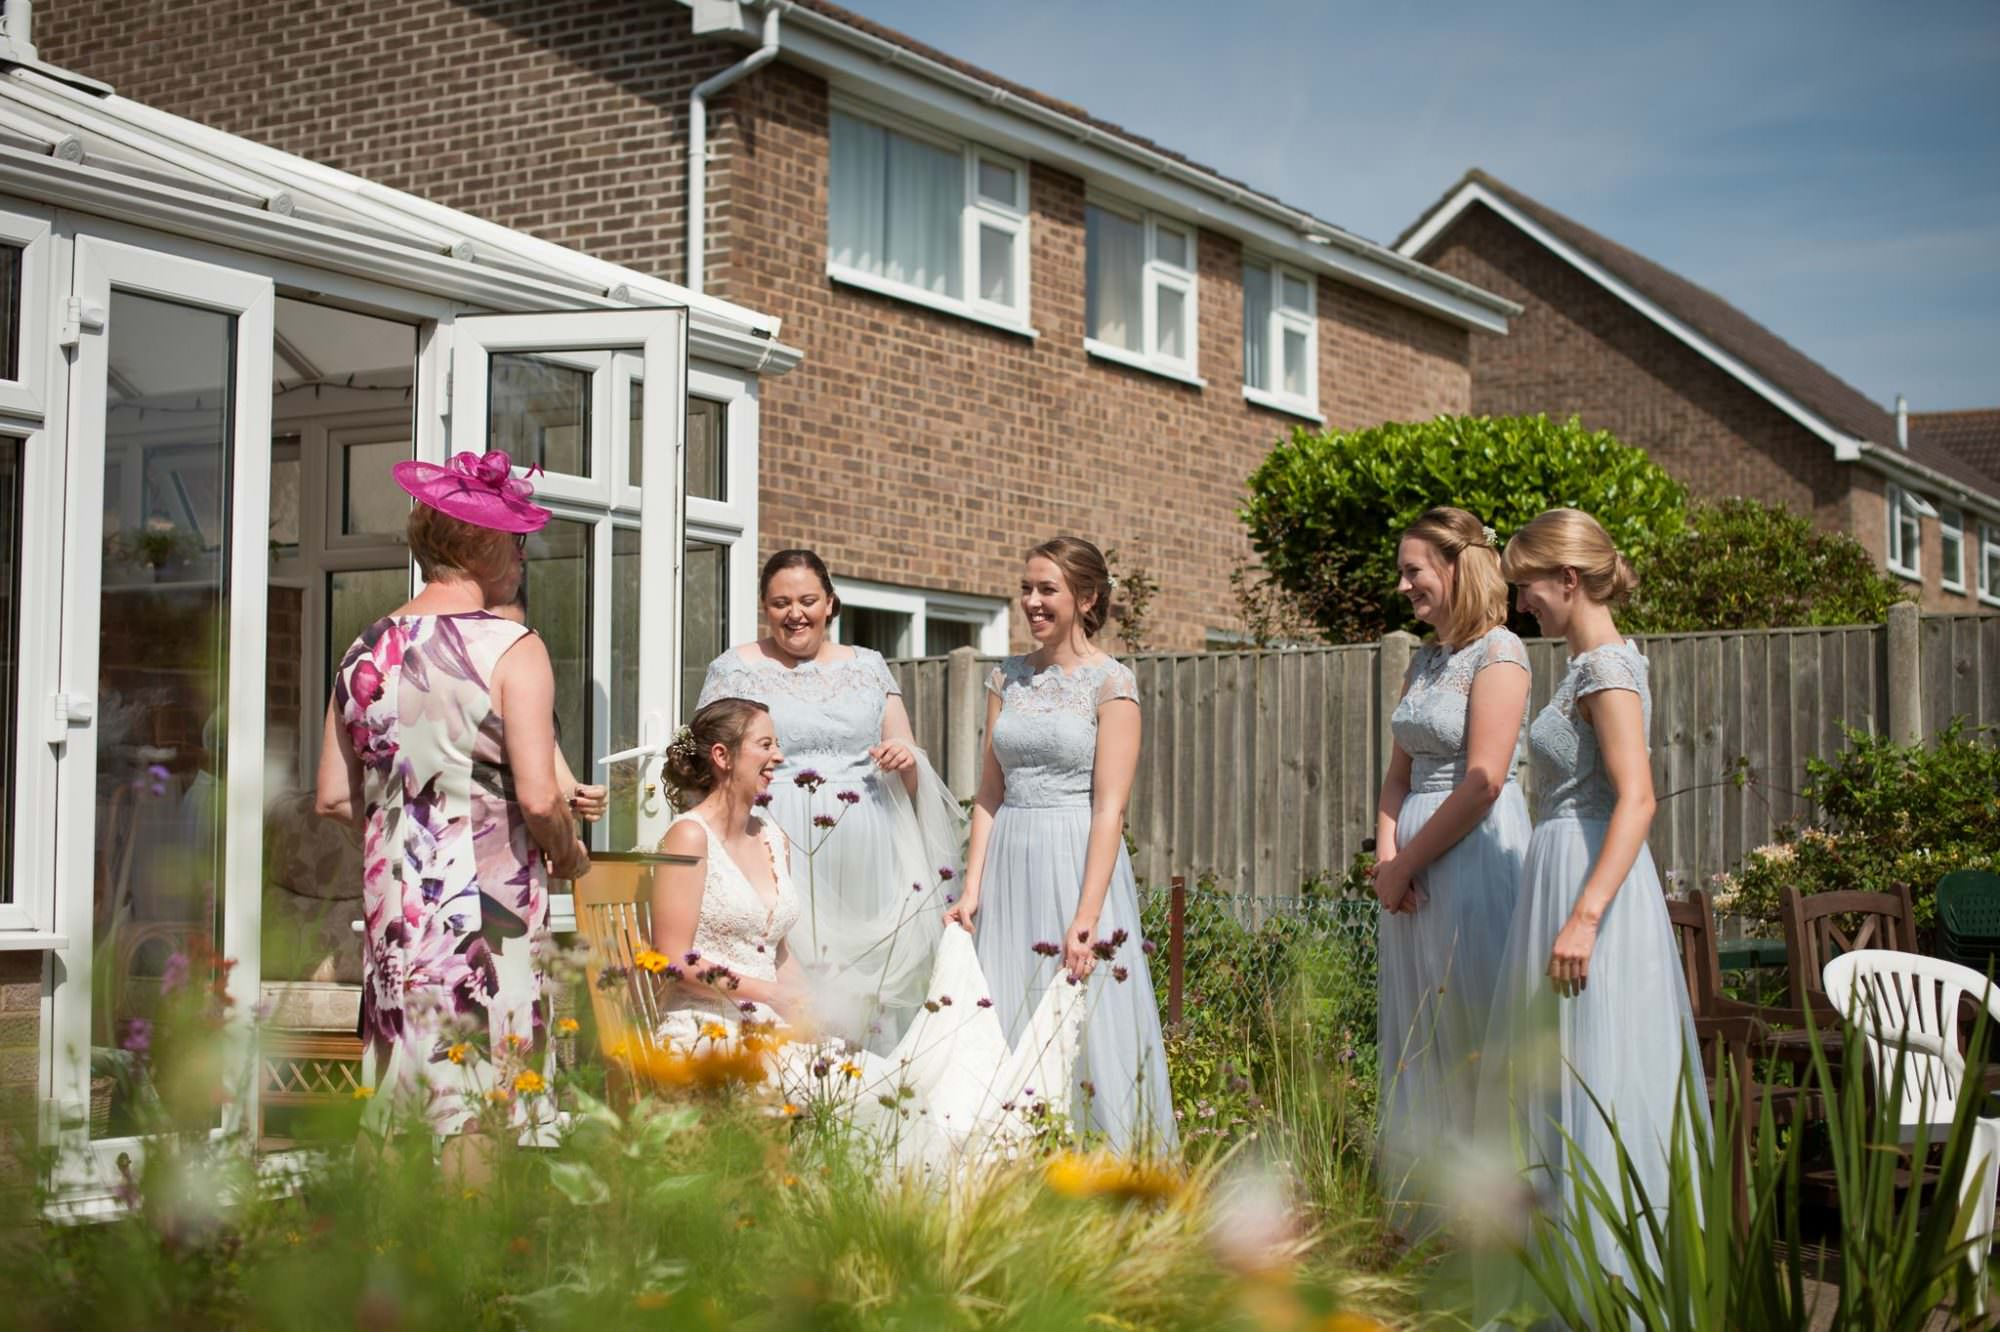 Wedding photography at Colourful Dorset Garden